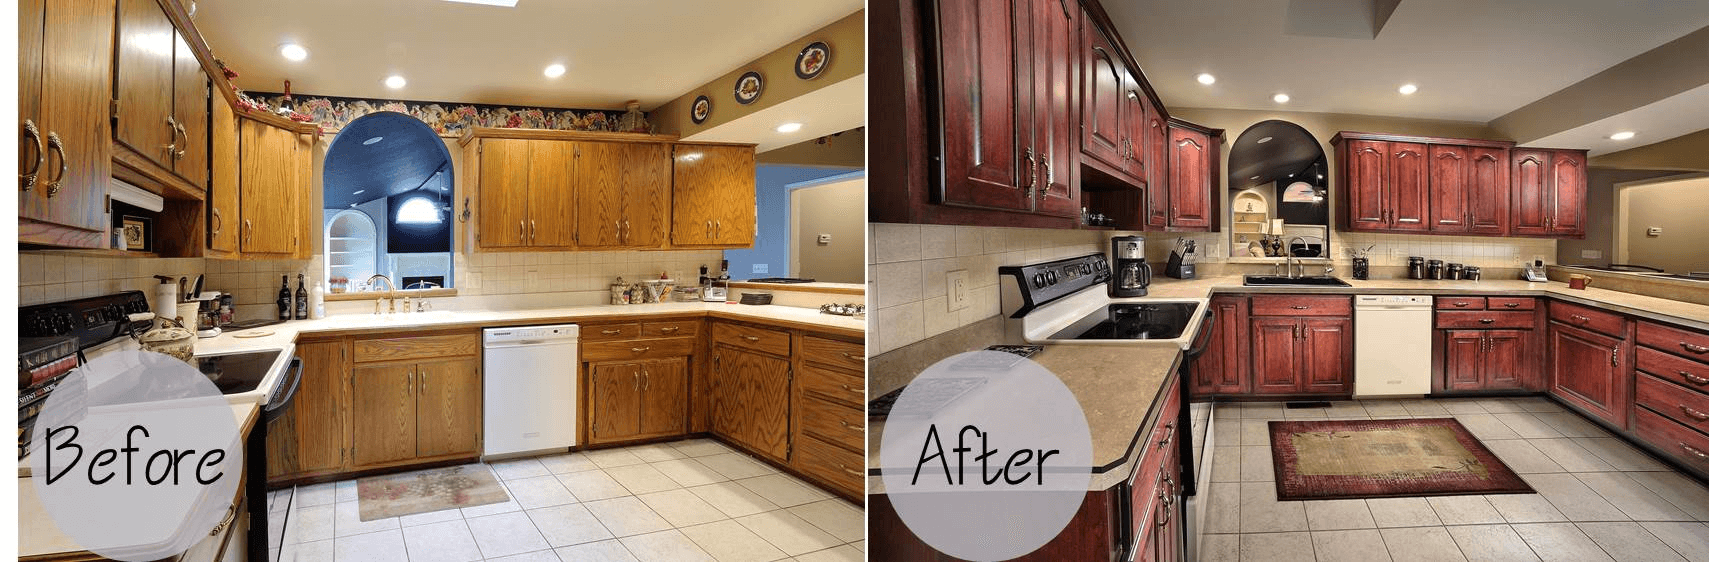 diy how refinish refacing kitchen tos woodworking to carpentry skills know cabinets reface and